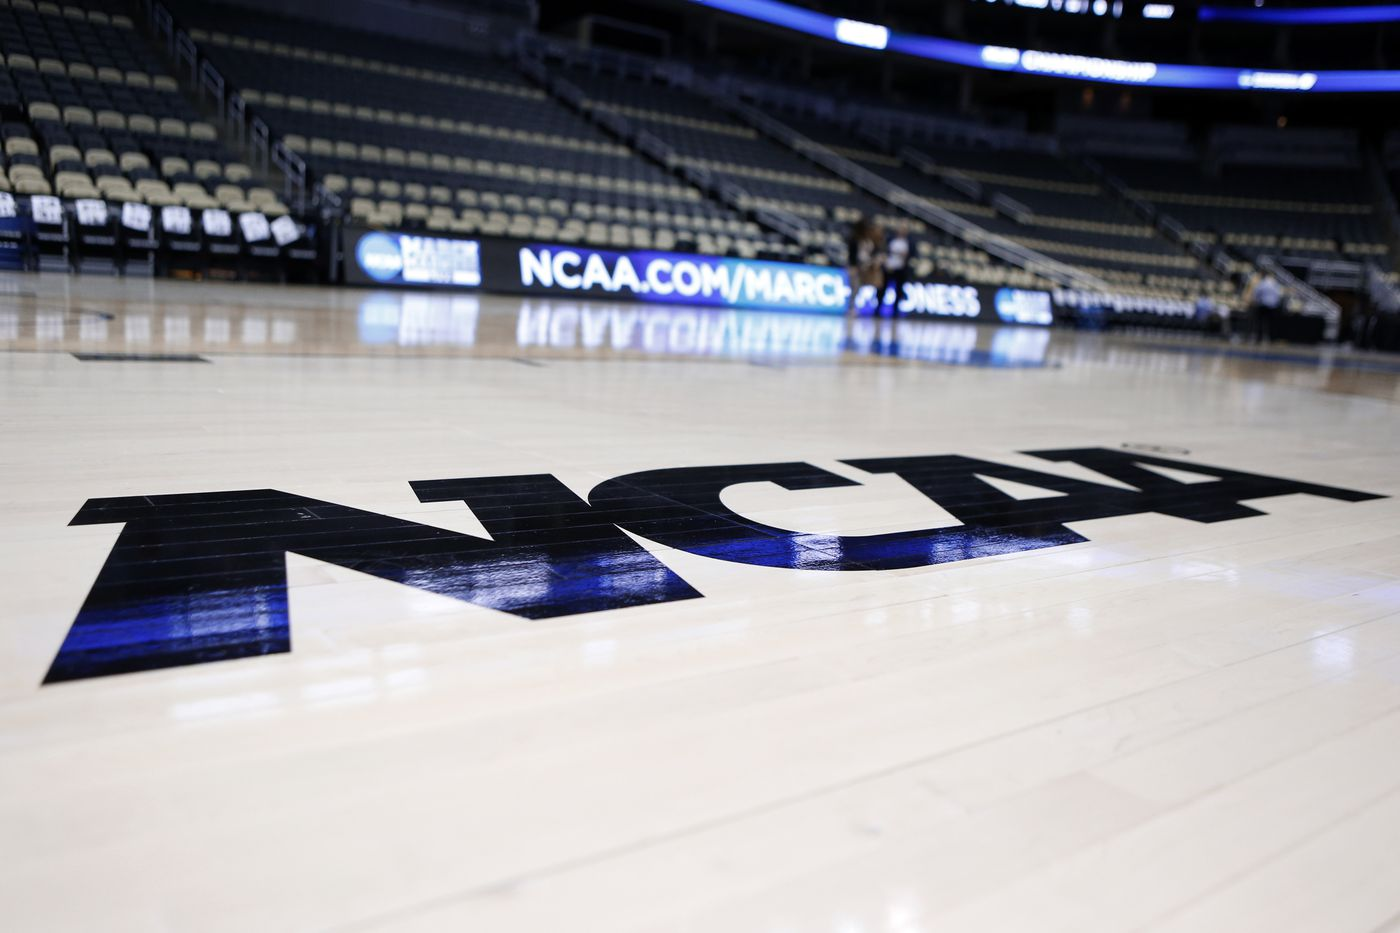 The NCAA logo is on the court at The Consol Energy Center in Pittsburgh.